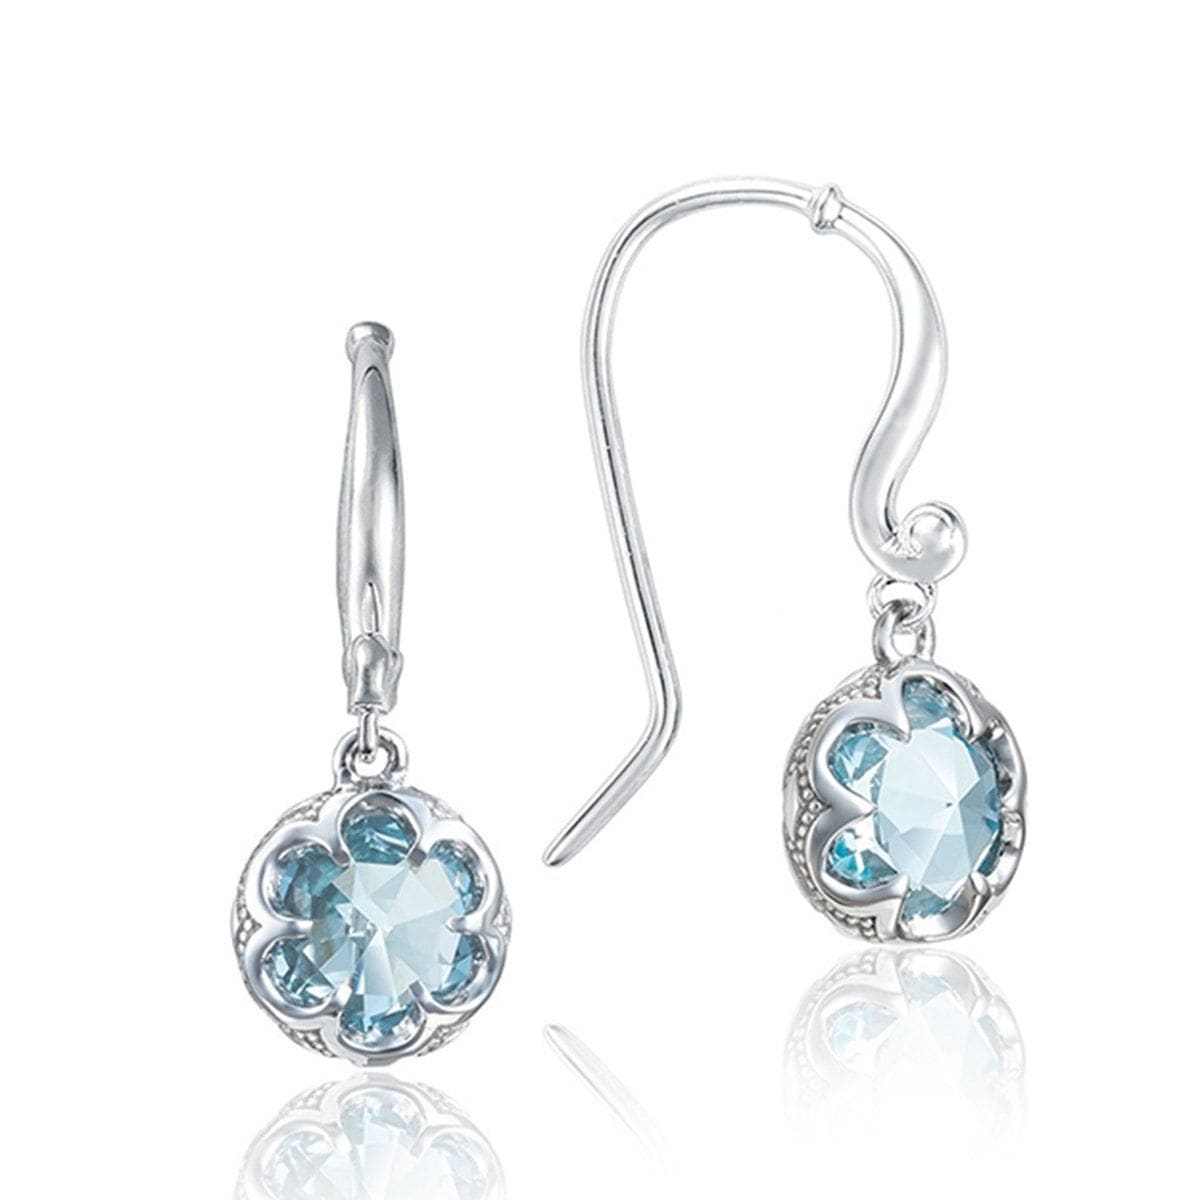 Silver 10MM Round Sky Blue Topaz French Wire Earrings - SE21102-Tacori-Renee Taylor Gallery